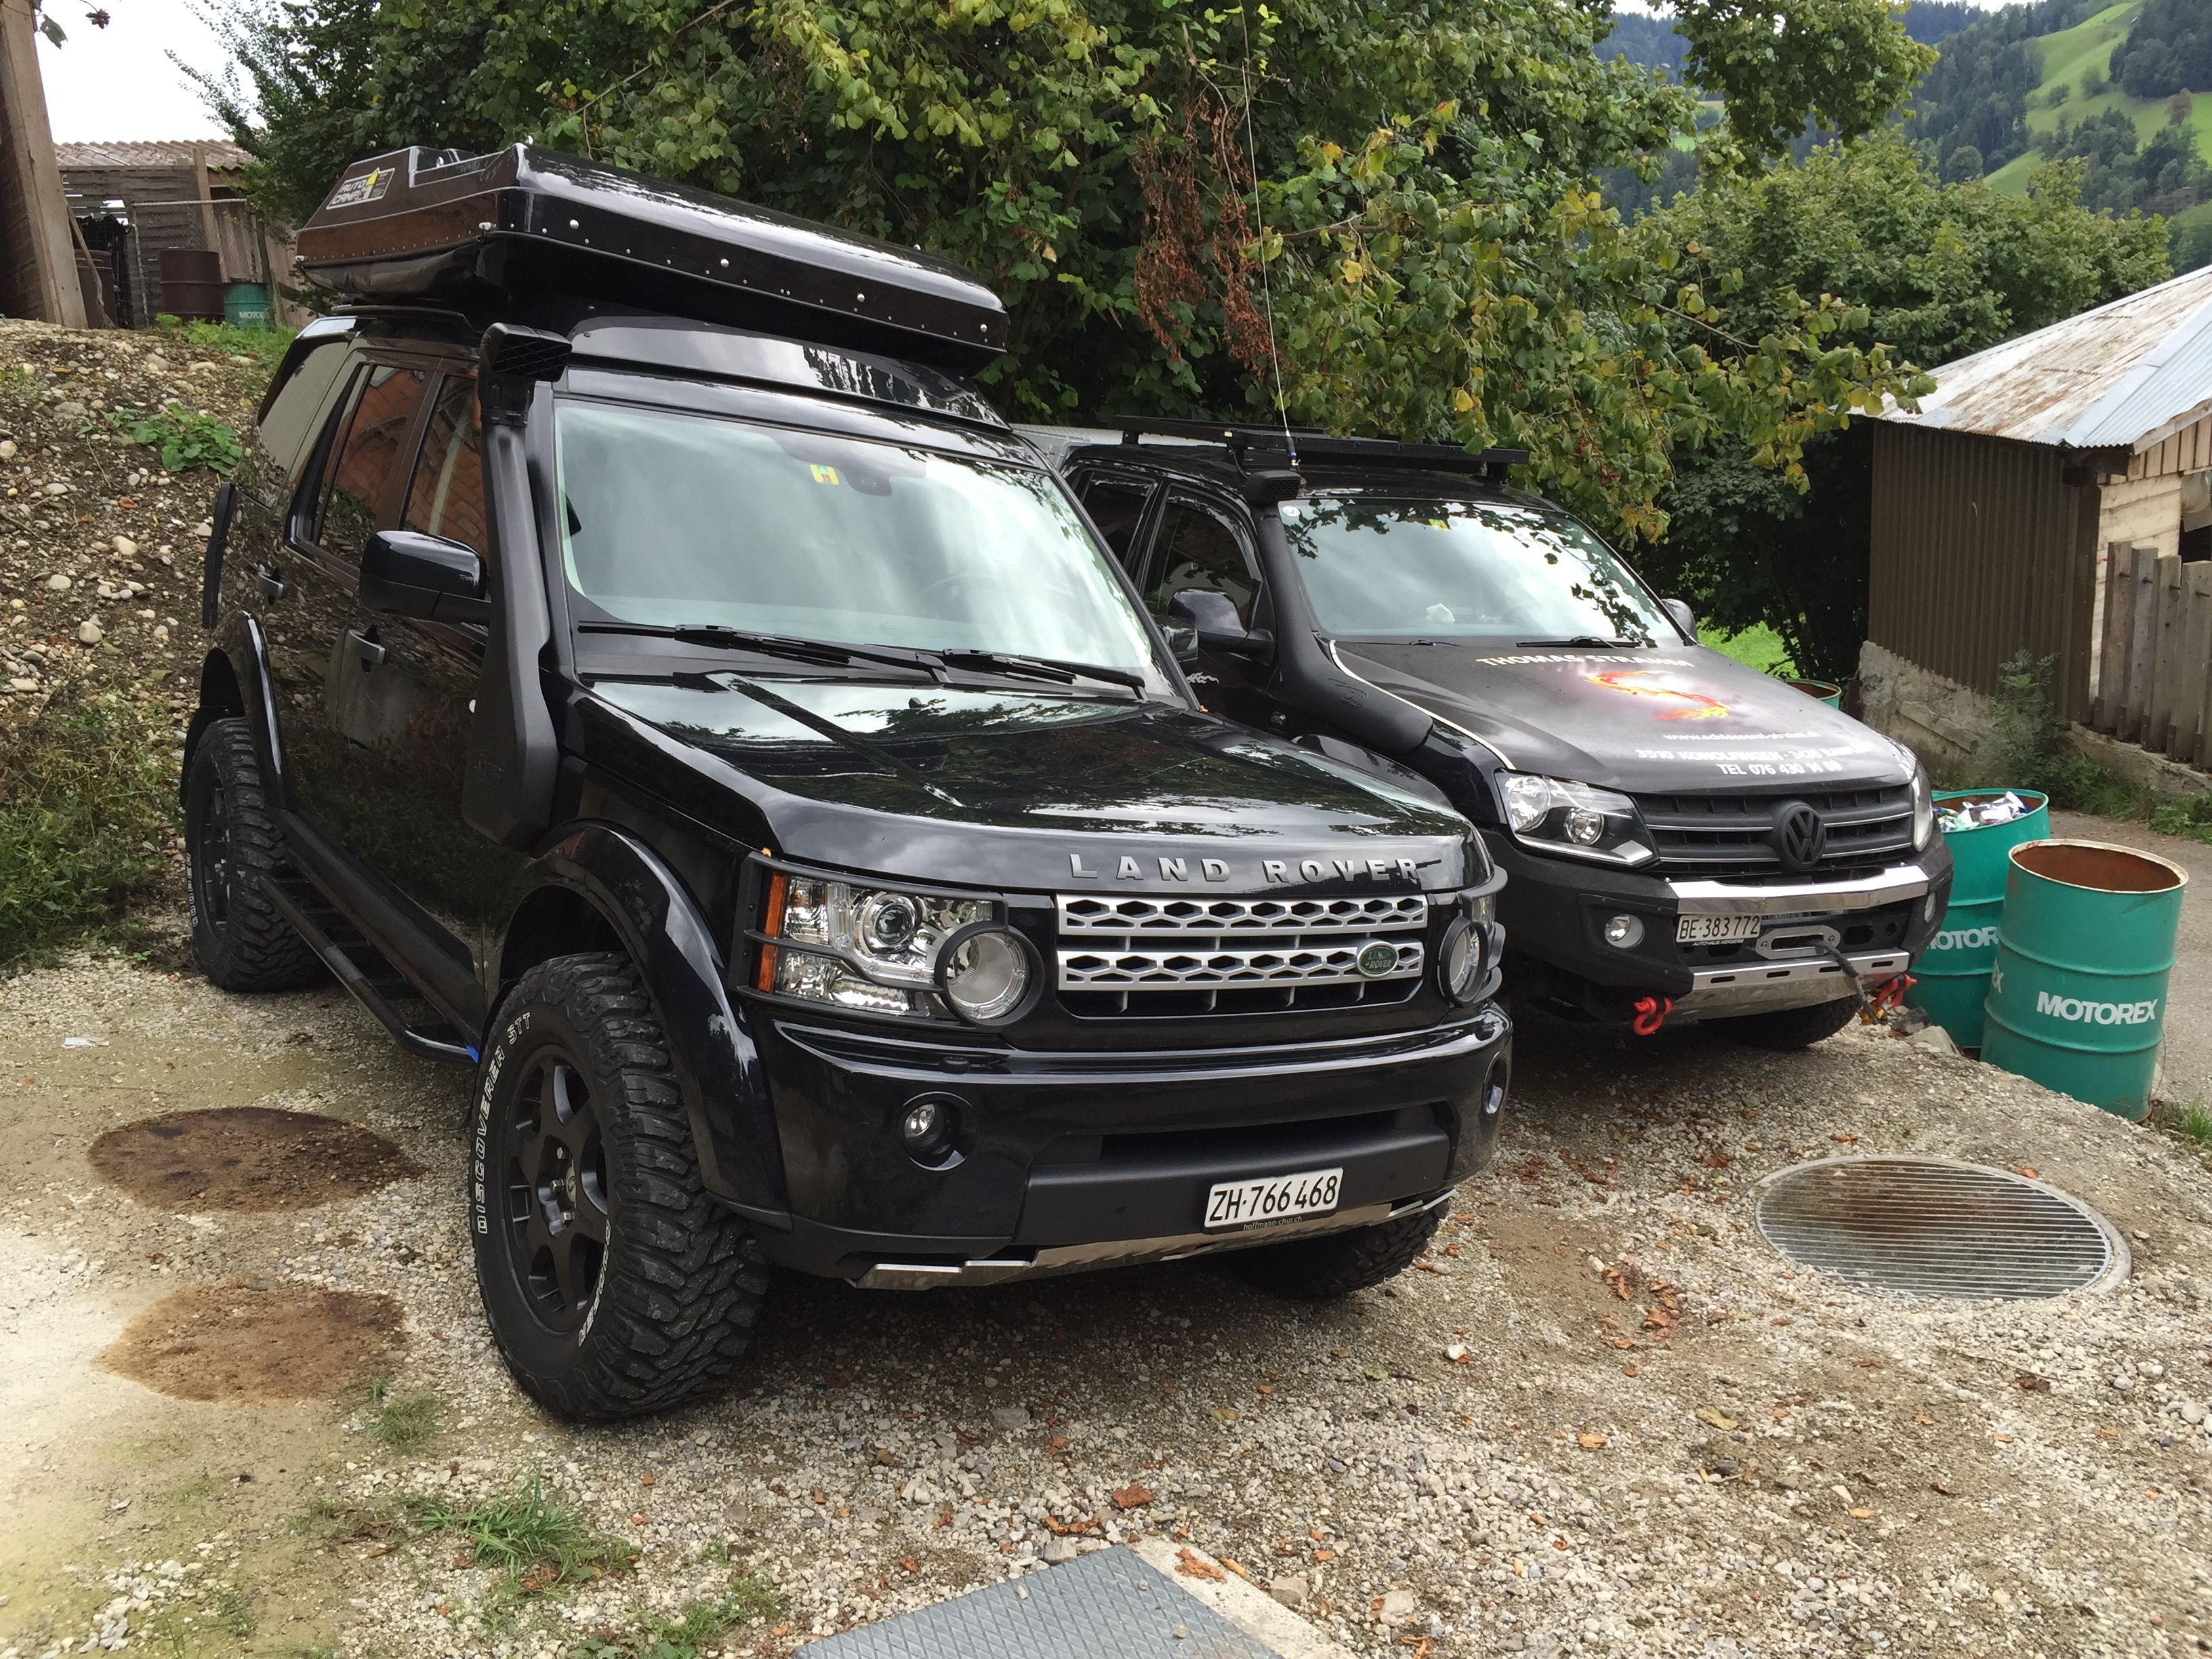 umgebauter land rover discovery 4 bei 4x4. Black Bedroom Furniture Sets. Home Design Ideas